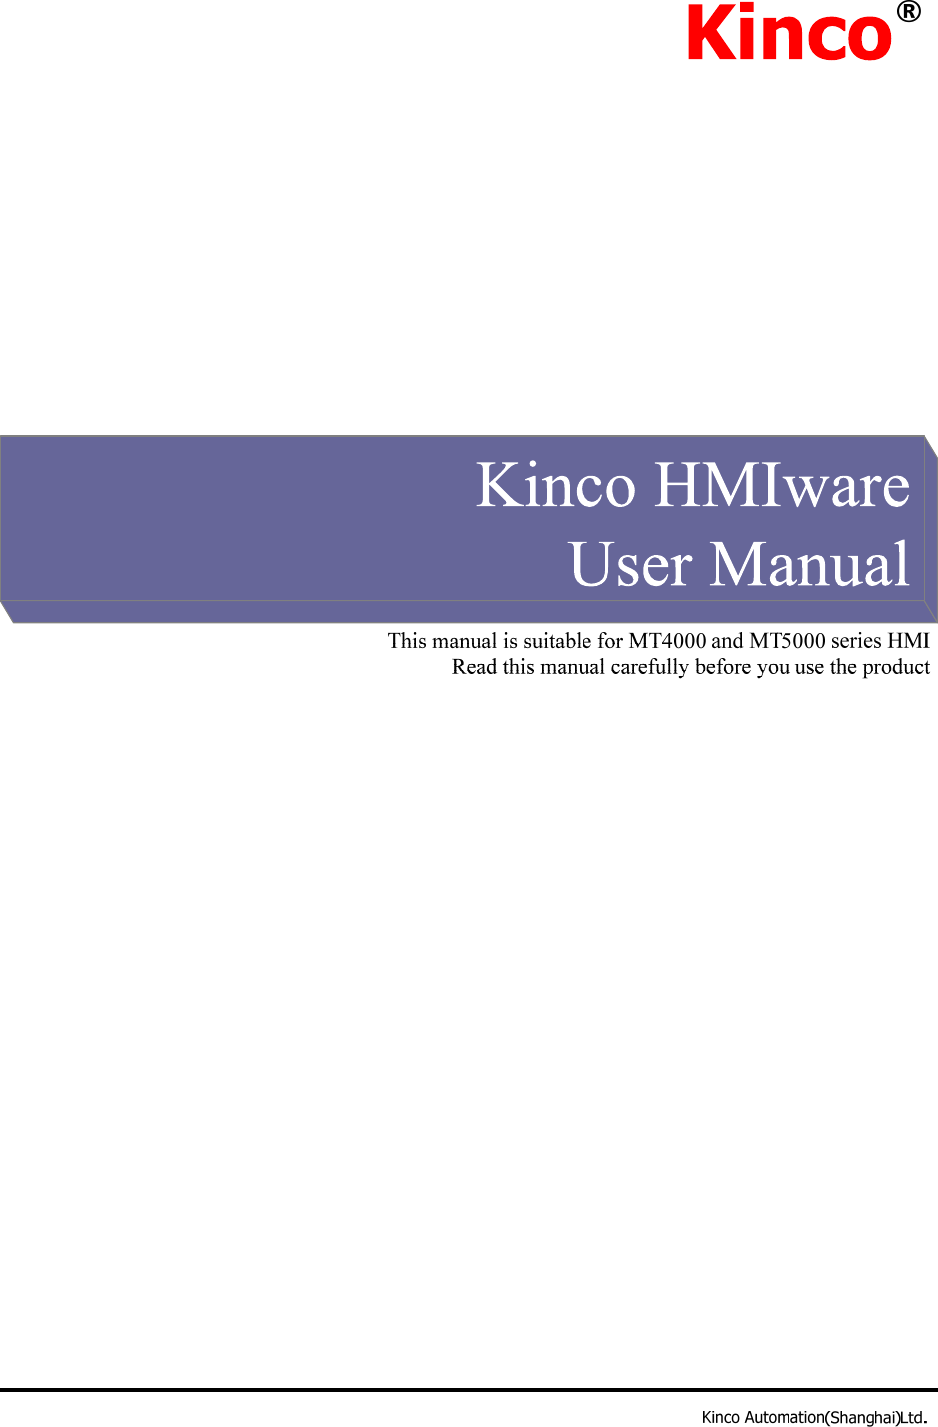 Kinco HMIware User Manual L011220